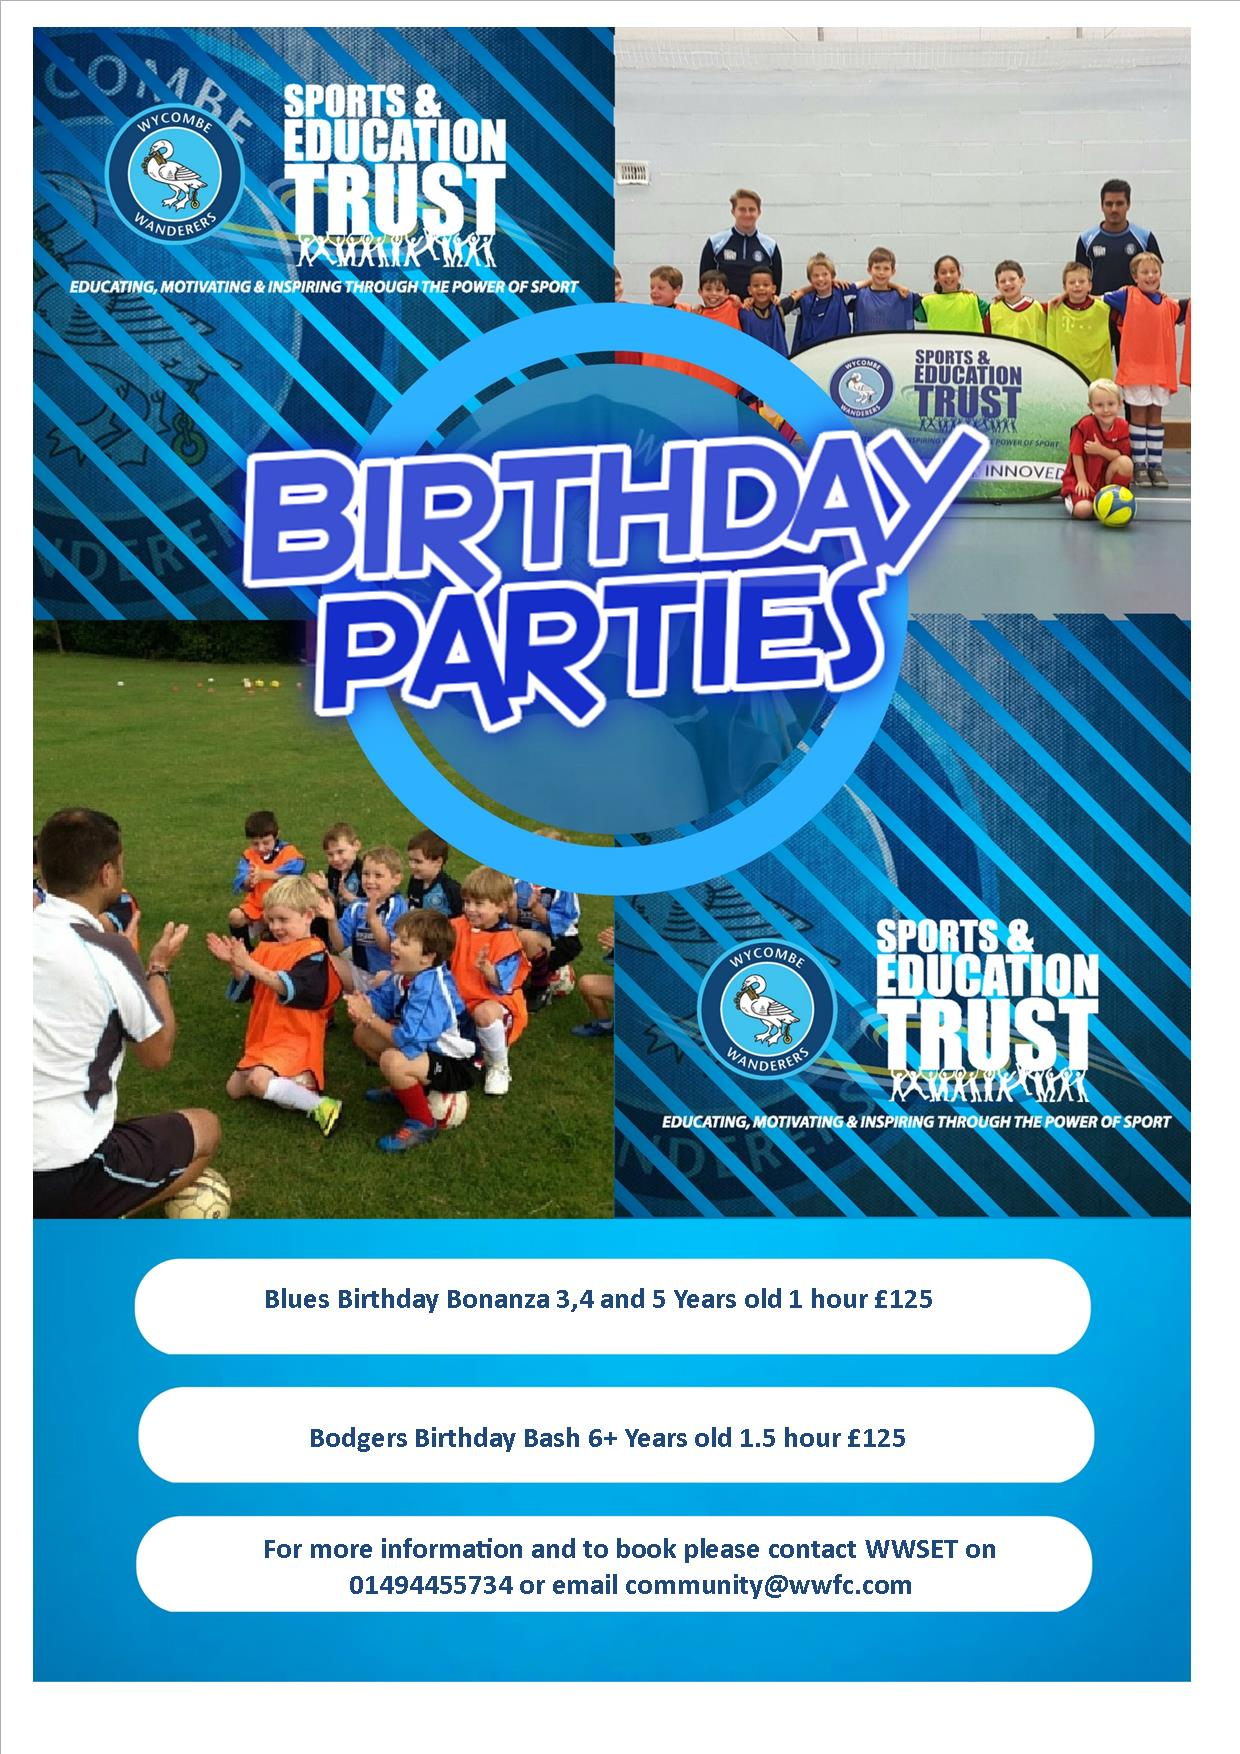 wycombe wanderers birthday parties flyer